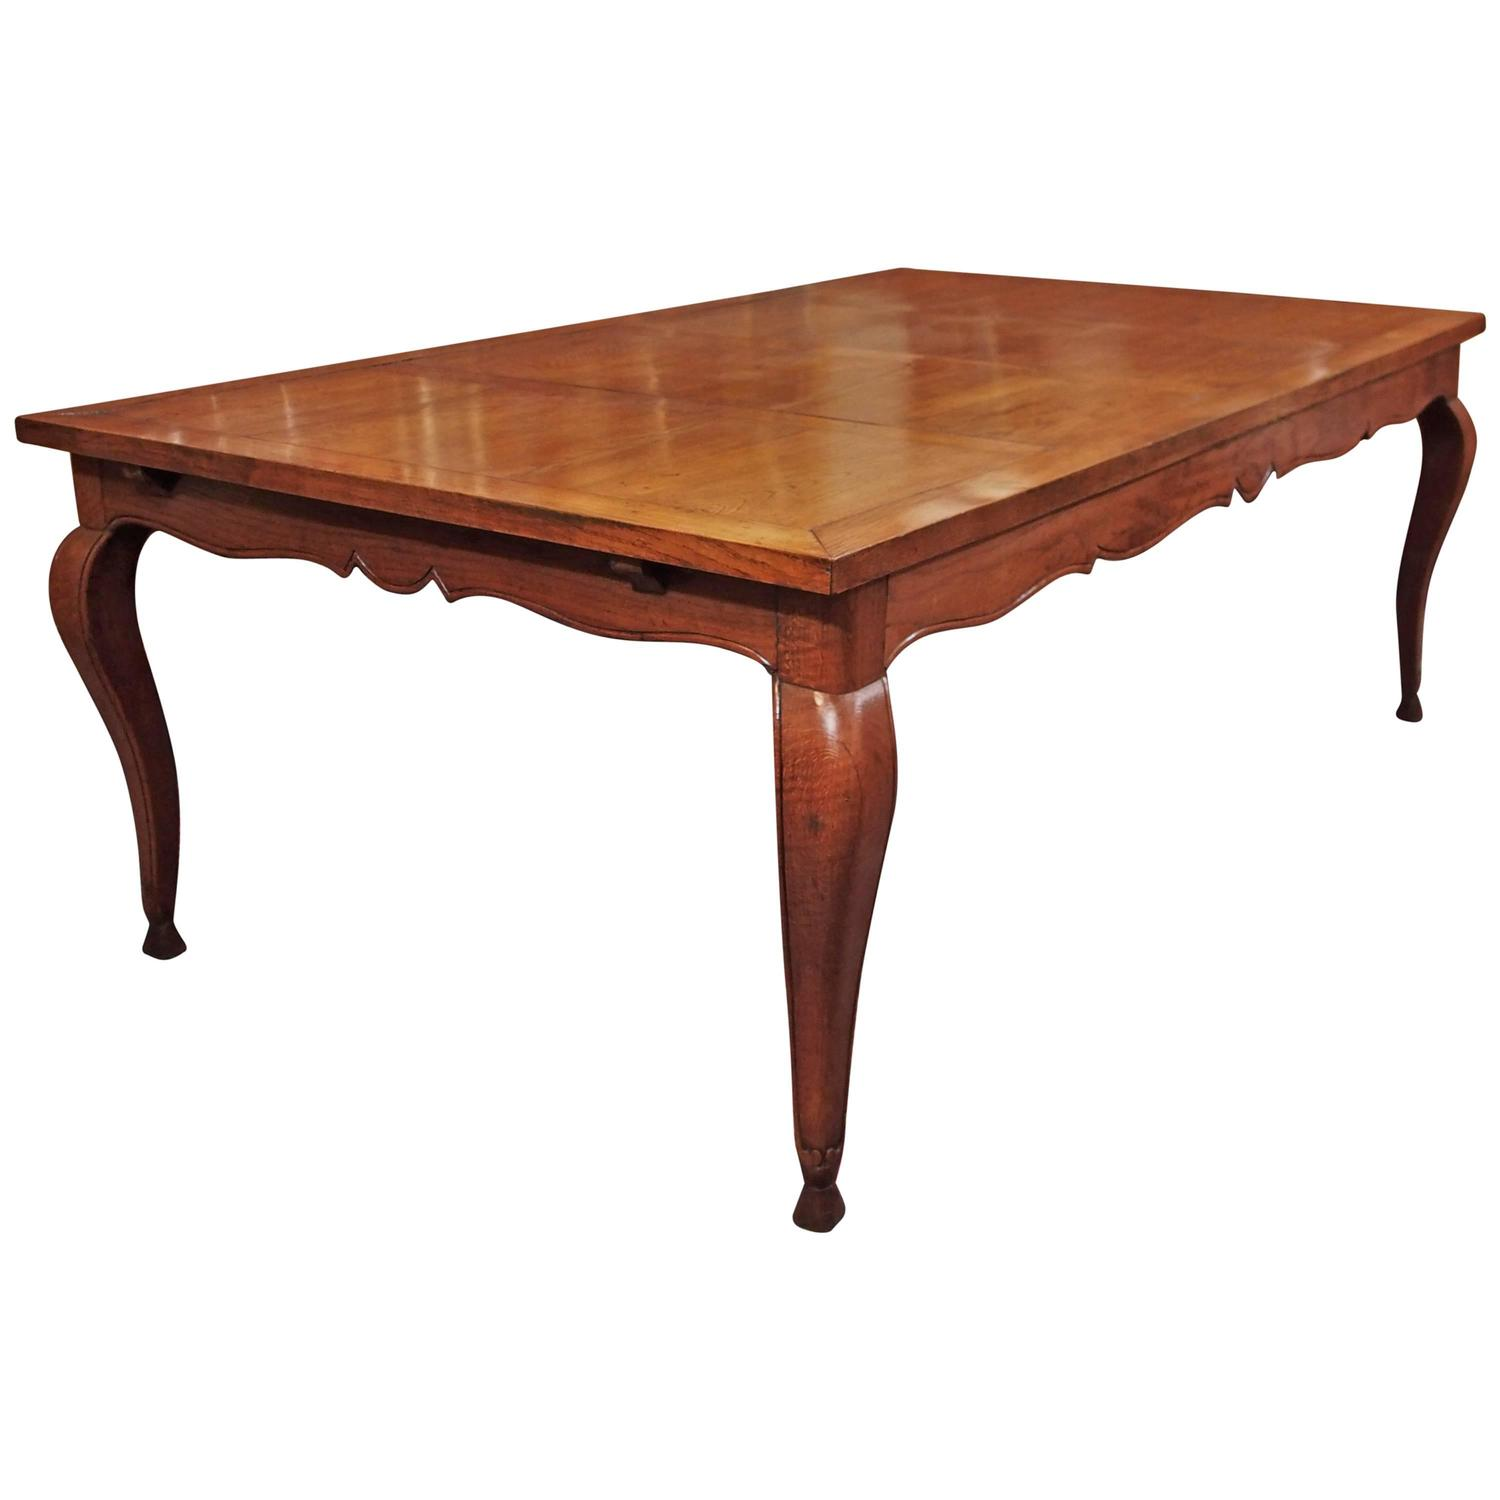 antique french dining table and chairs cheap shampoo bowls provincial circa 1890 at 1stdibs